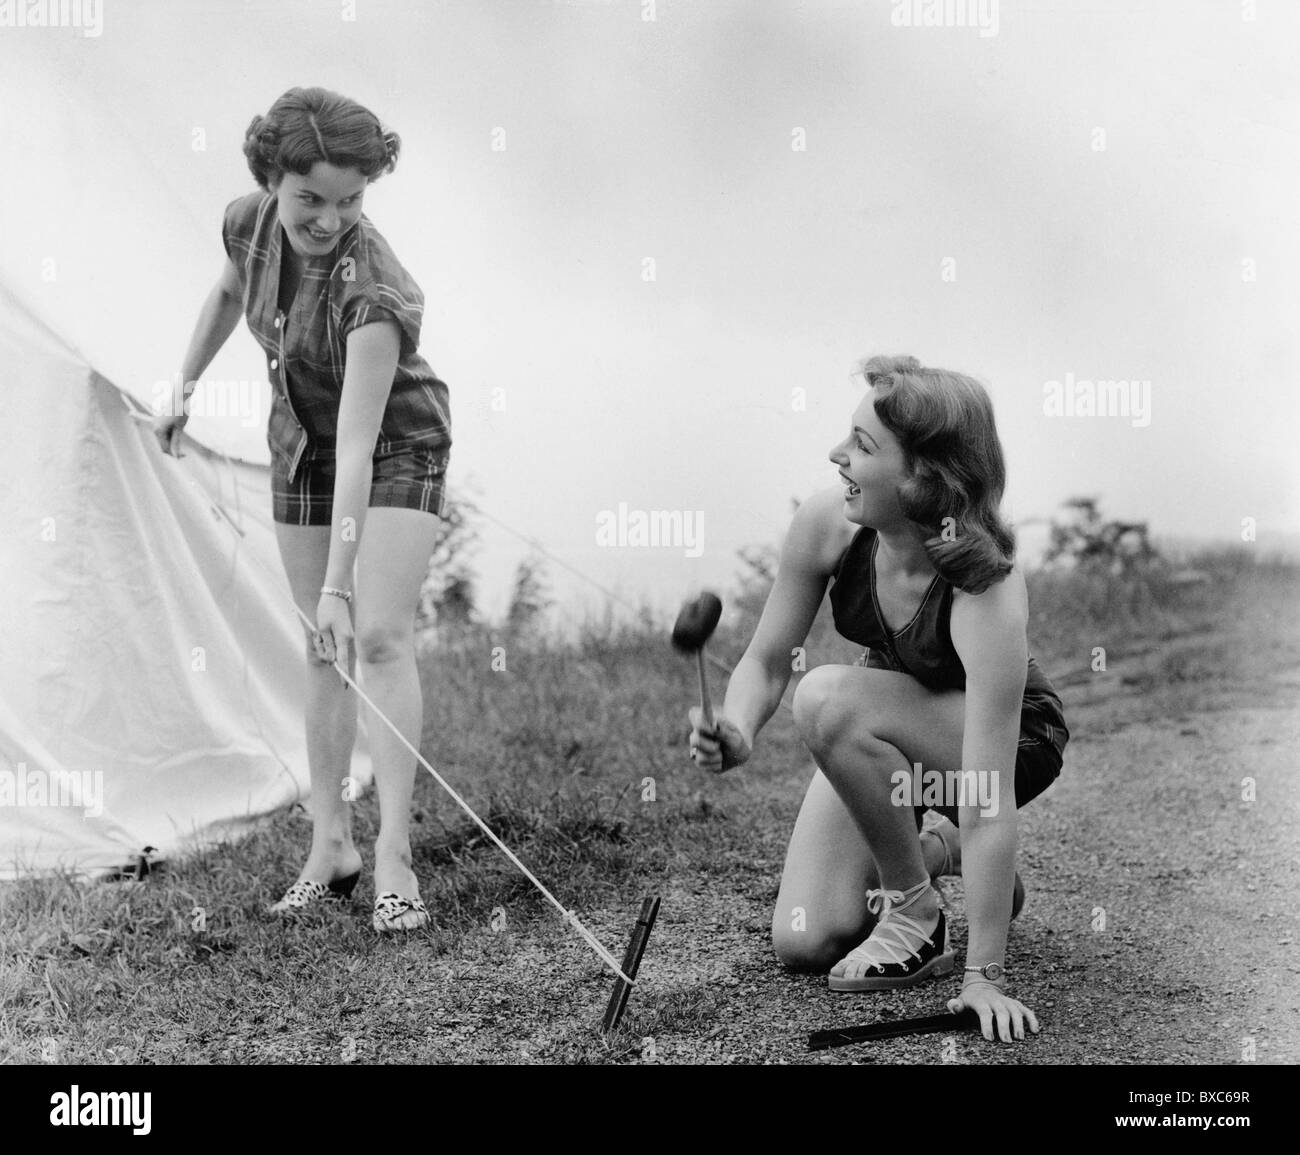 tourism, camping, two women erecting a tent, hitting tent peg in the ground, 1955, Additional-Rights-Clearences - Stock Image